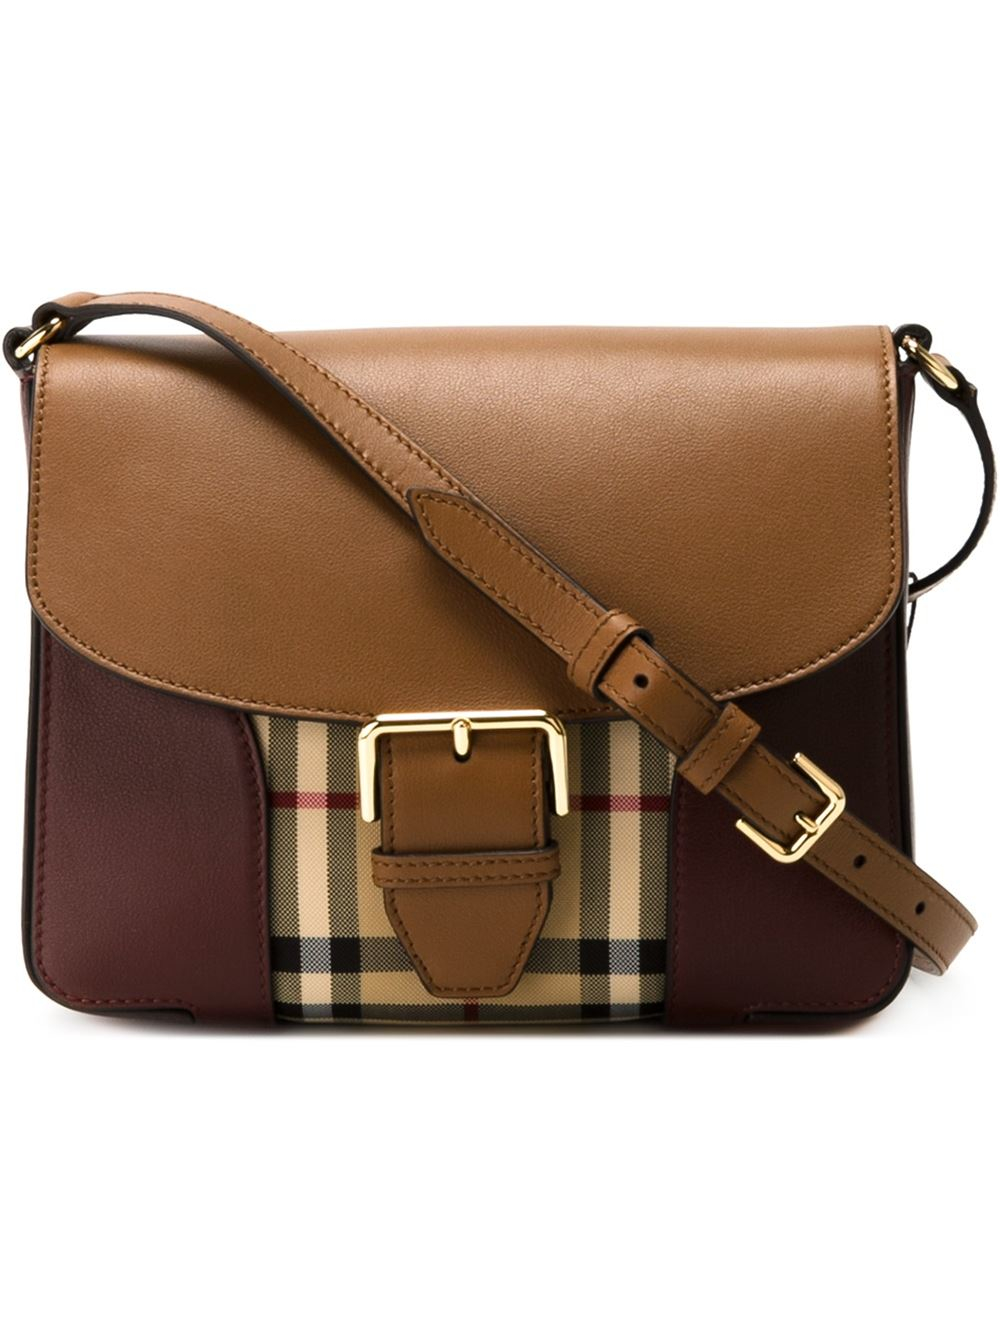 Burberry Crossbody Bags | Nordstrom